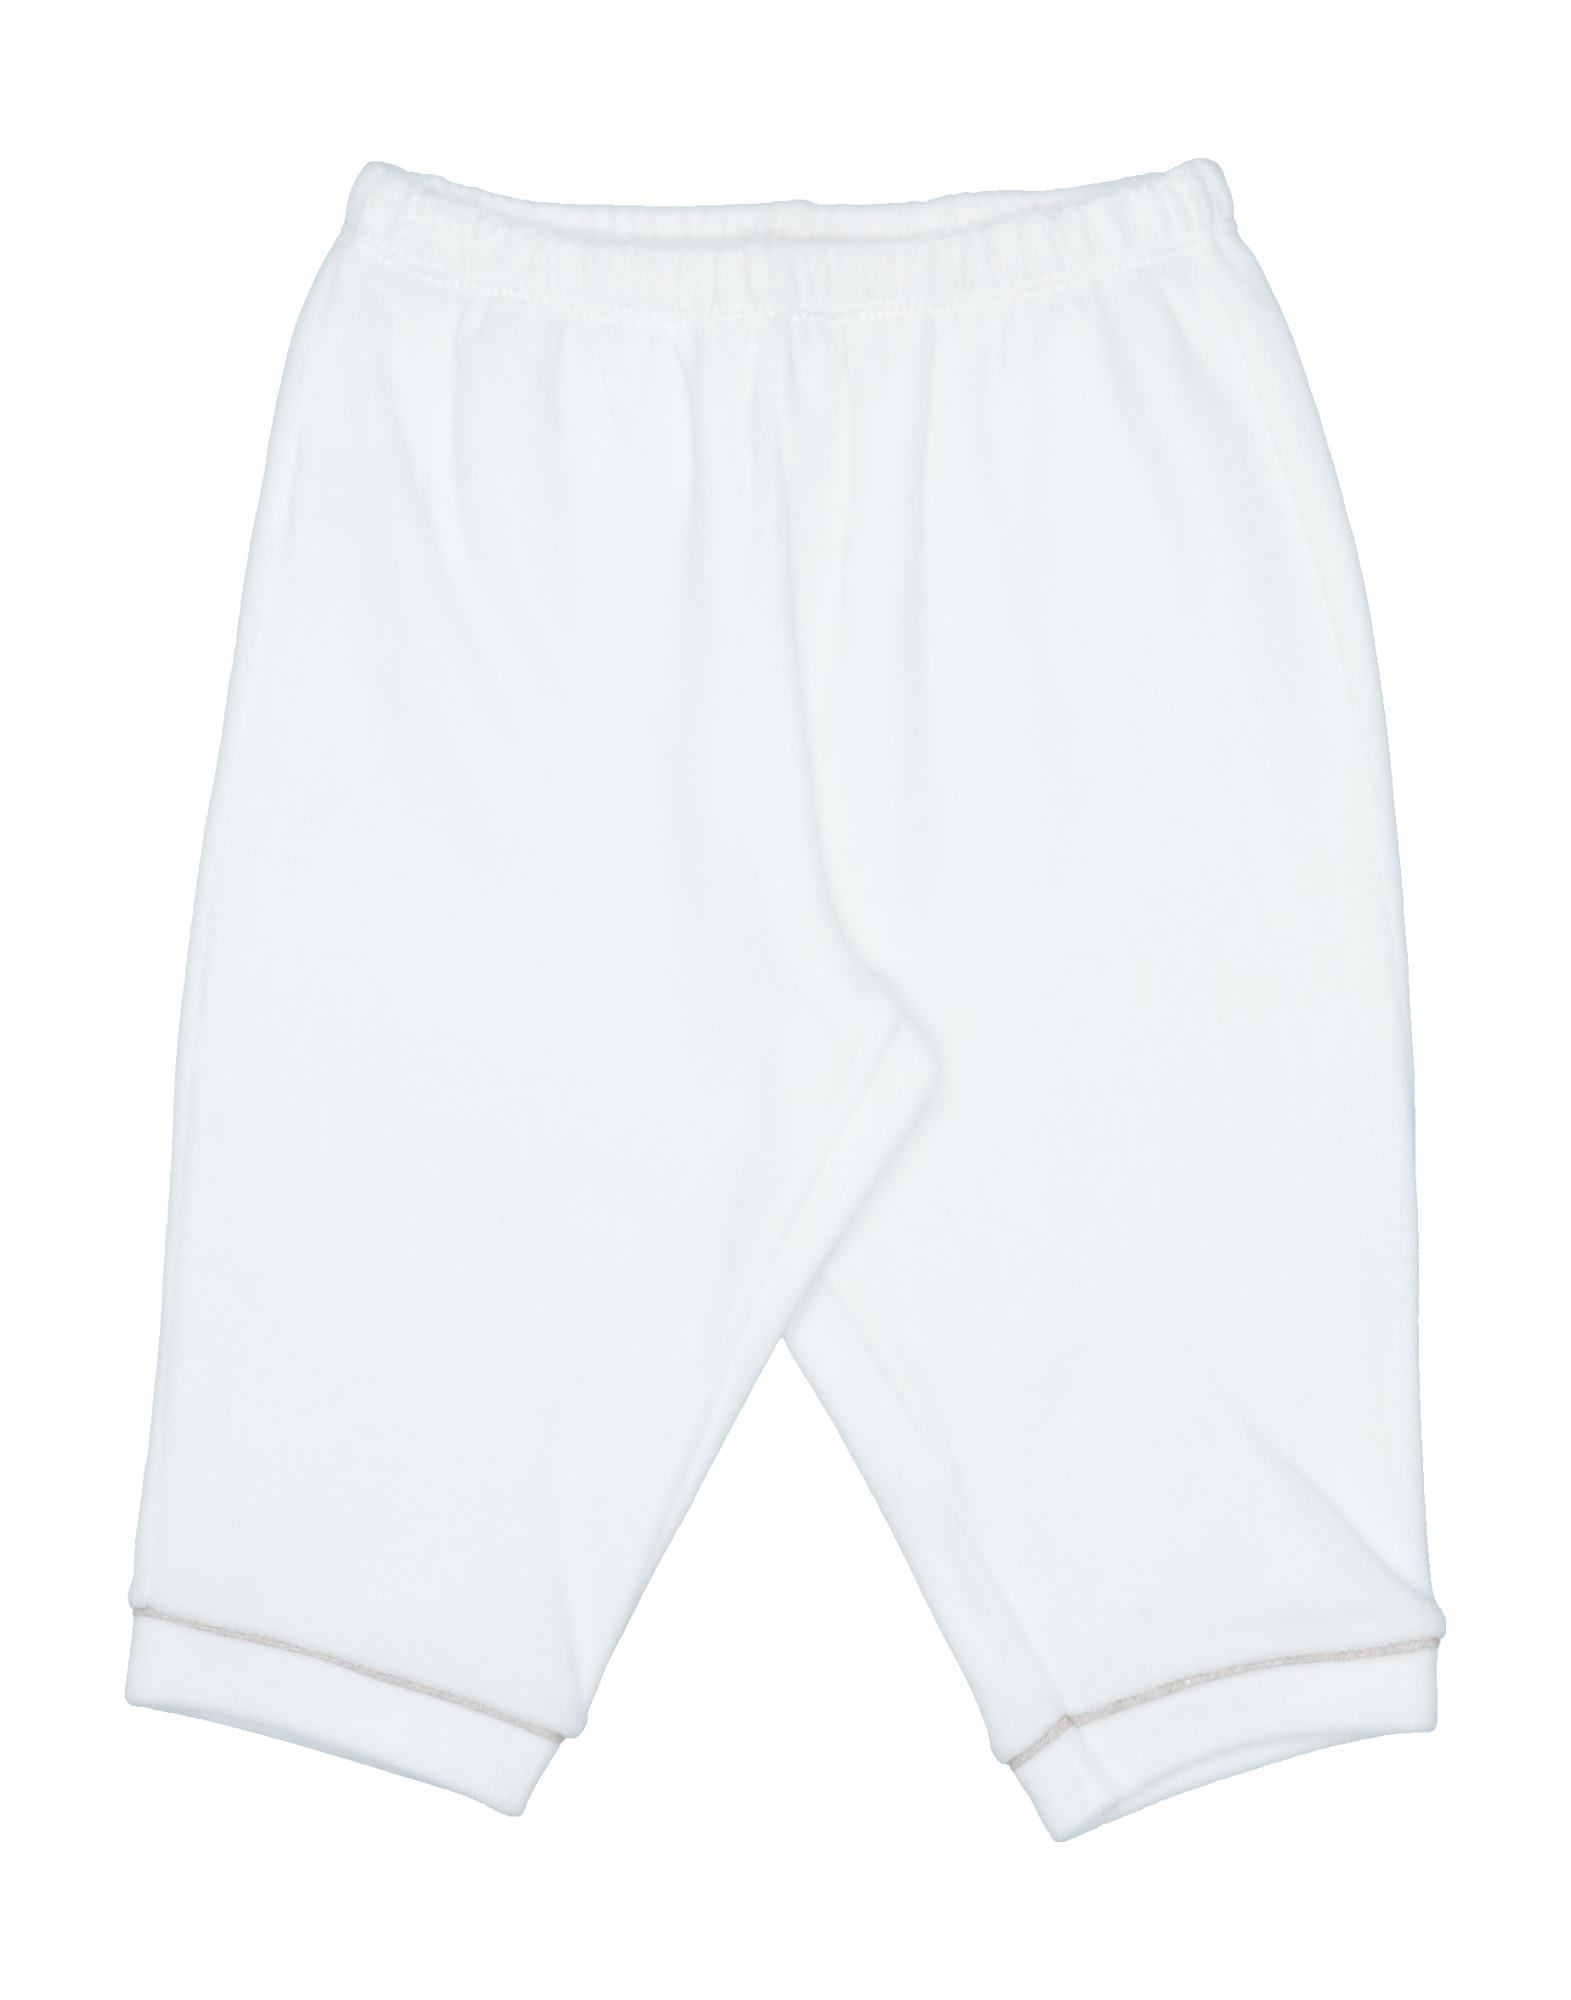 Cyrus Company Kids' Casual Pants In White